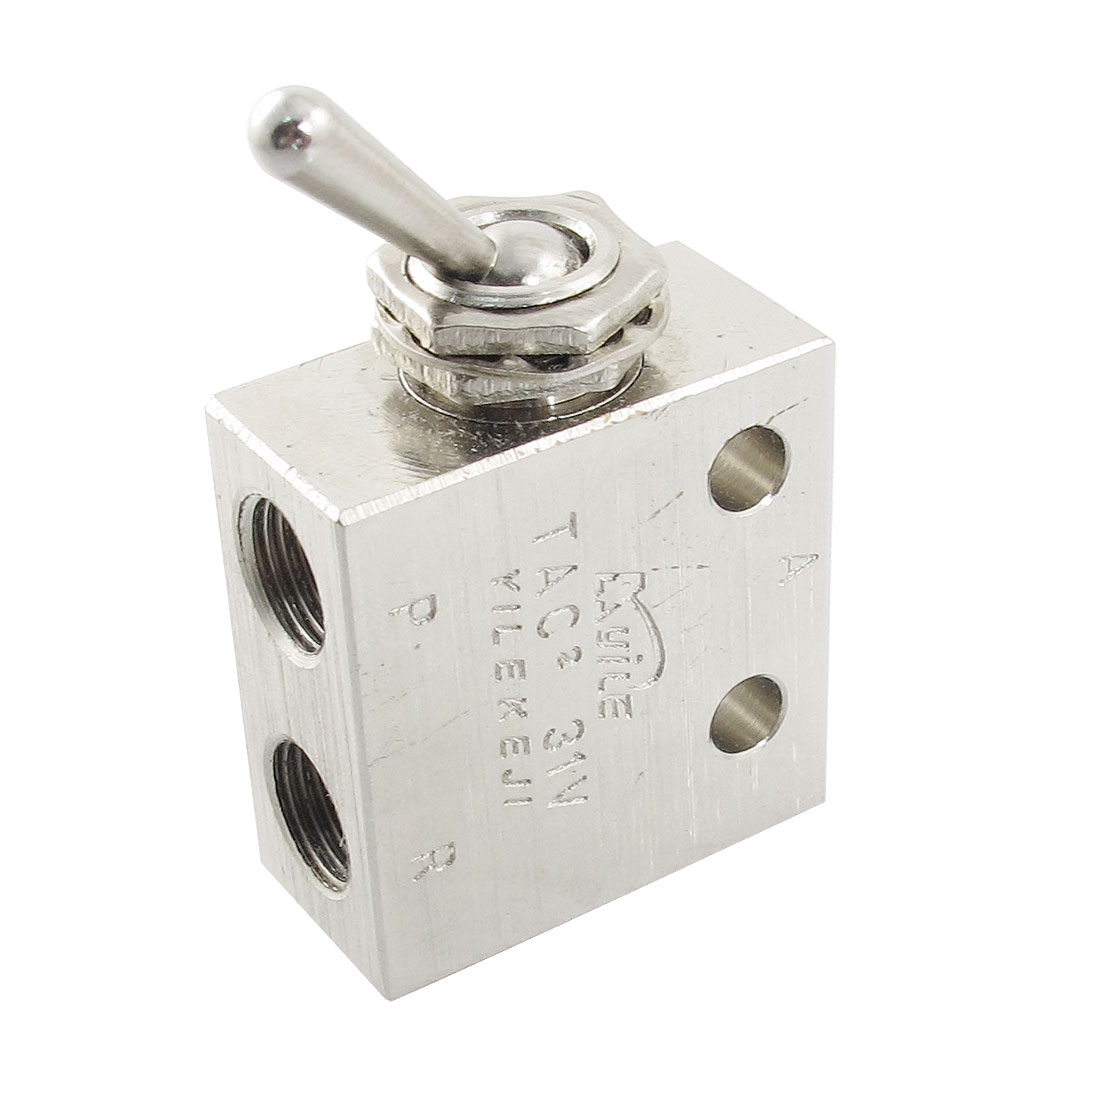 1/8Pt Thread 2 Position 3 Way Rectangle Mechanical Air Pneumatic Valve For Control The Output Signal Of Pneumatic Systems 5pcs air pneumatic 3 8 x 1 4 pt m m thread pipe connectors hex nipples